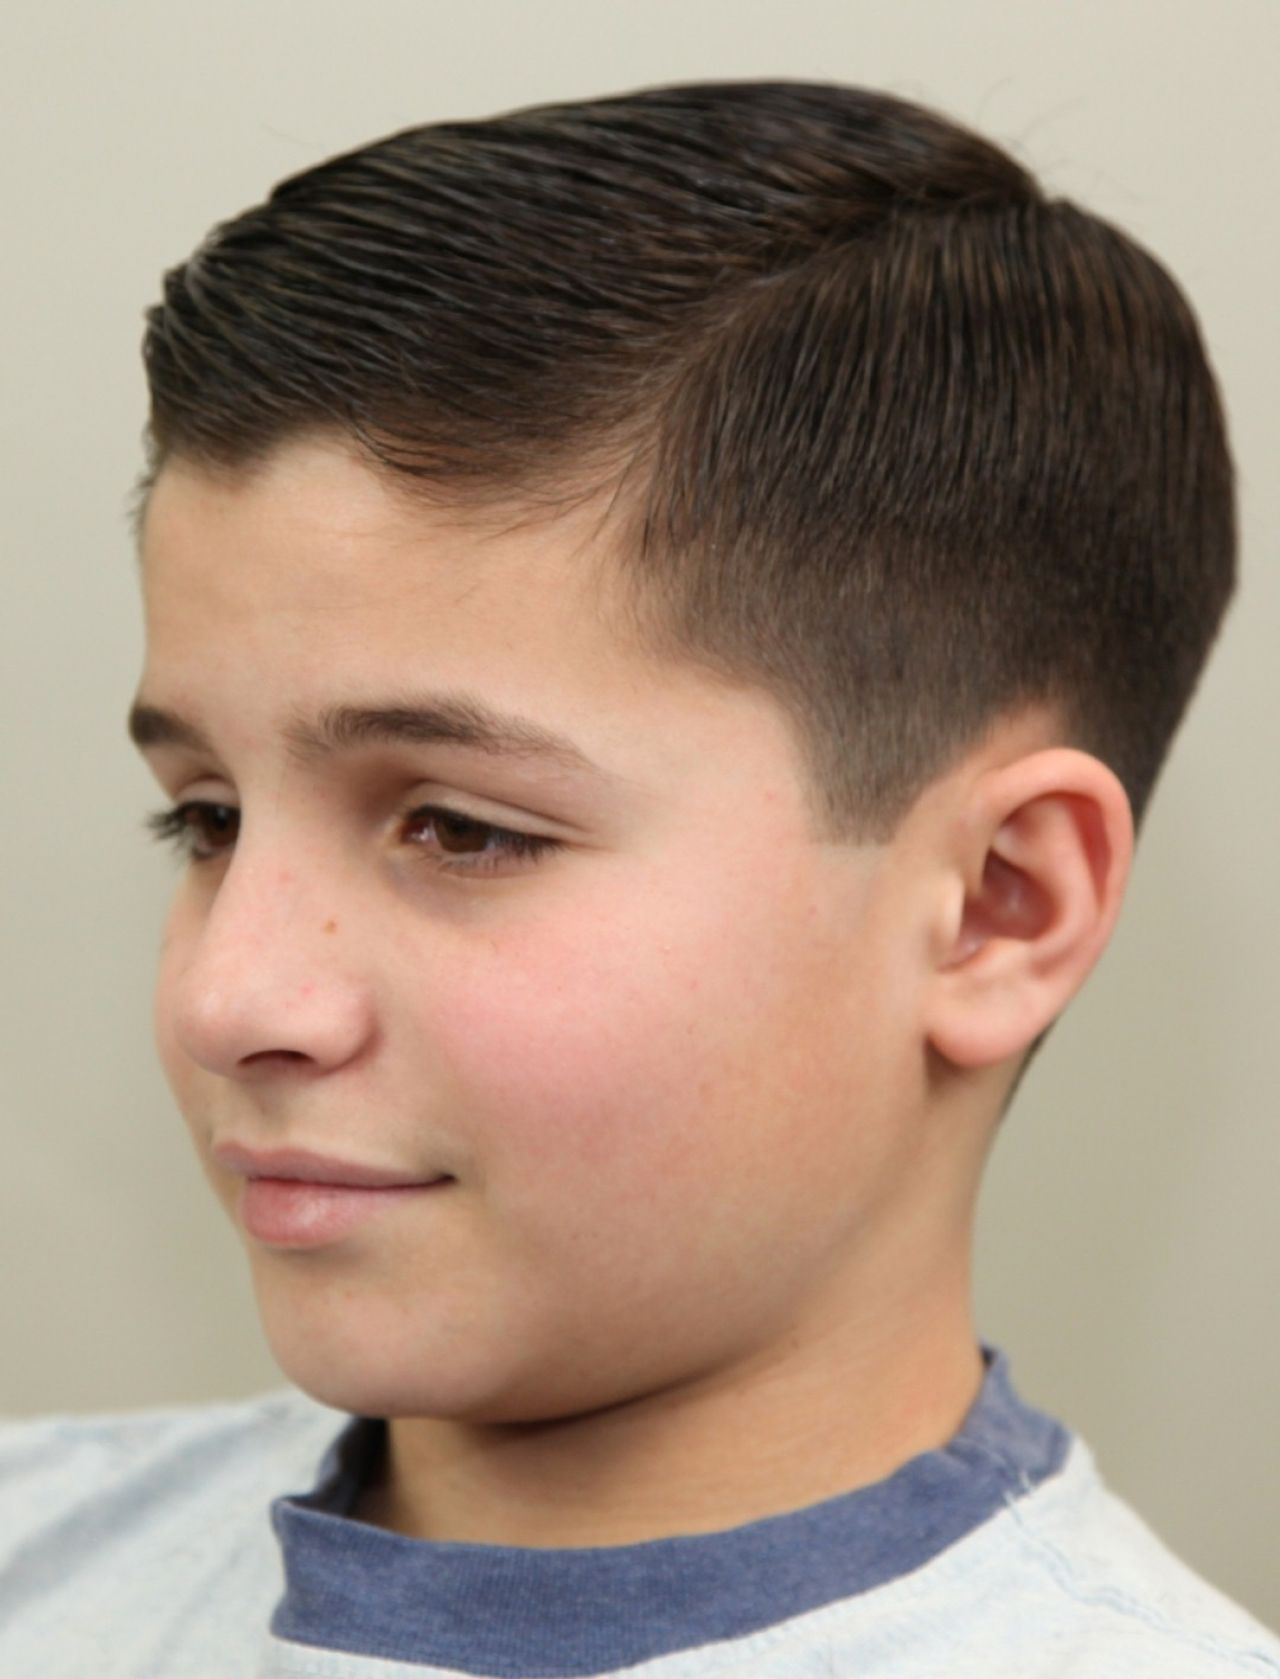 Hairstyles for young boys 2014